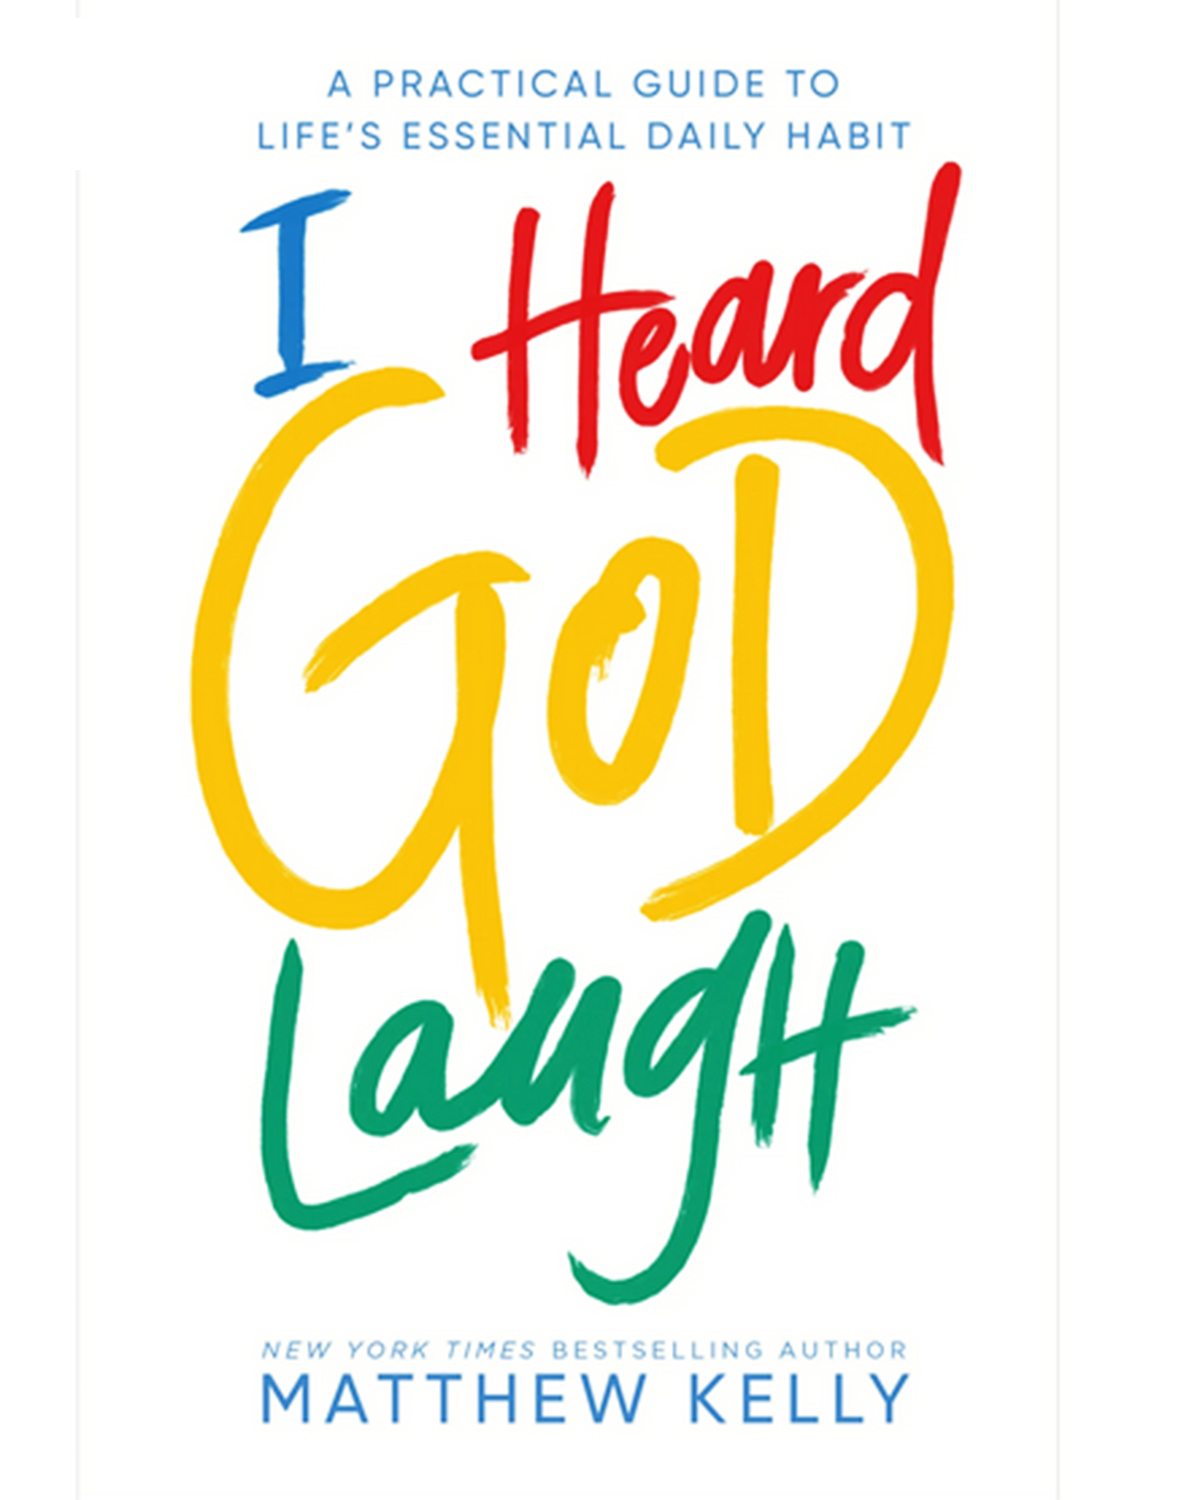 CHRISTMAS BOOK: I Heard God Laugh by Matthew Kelly